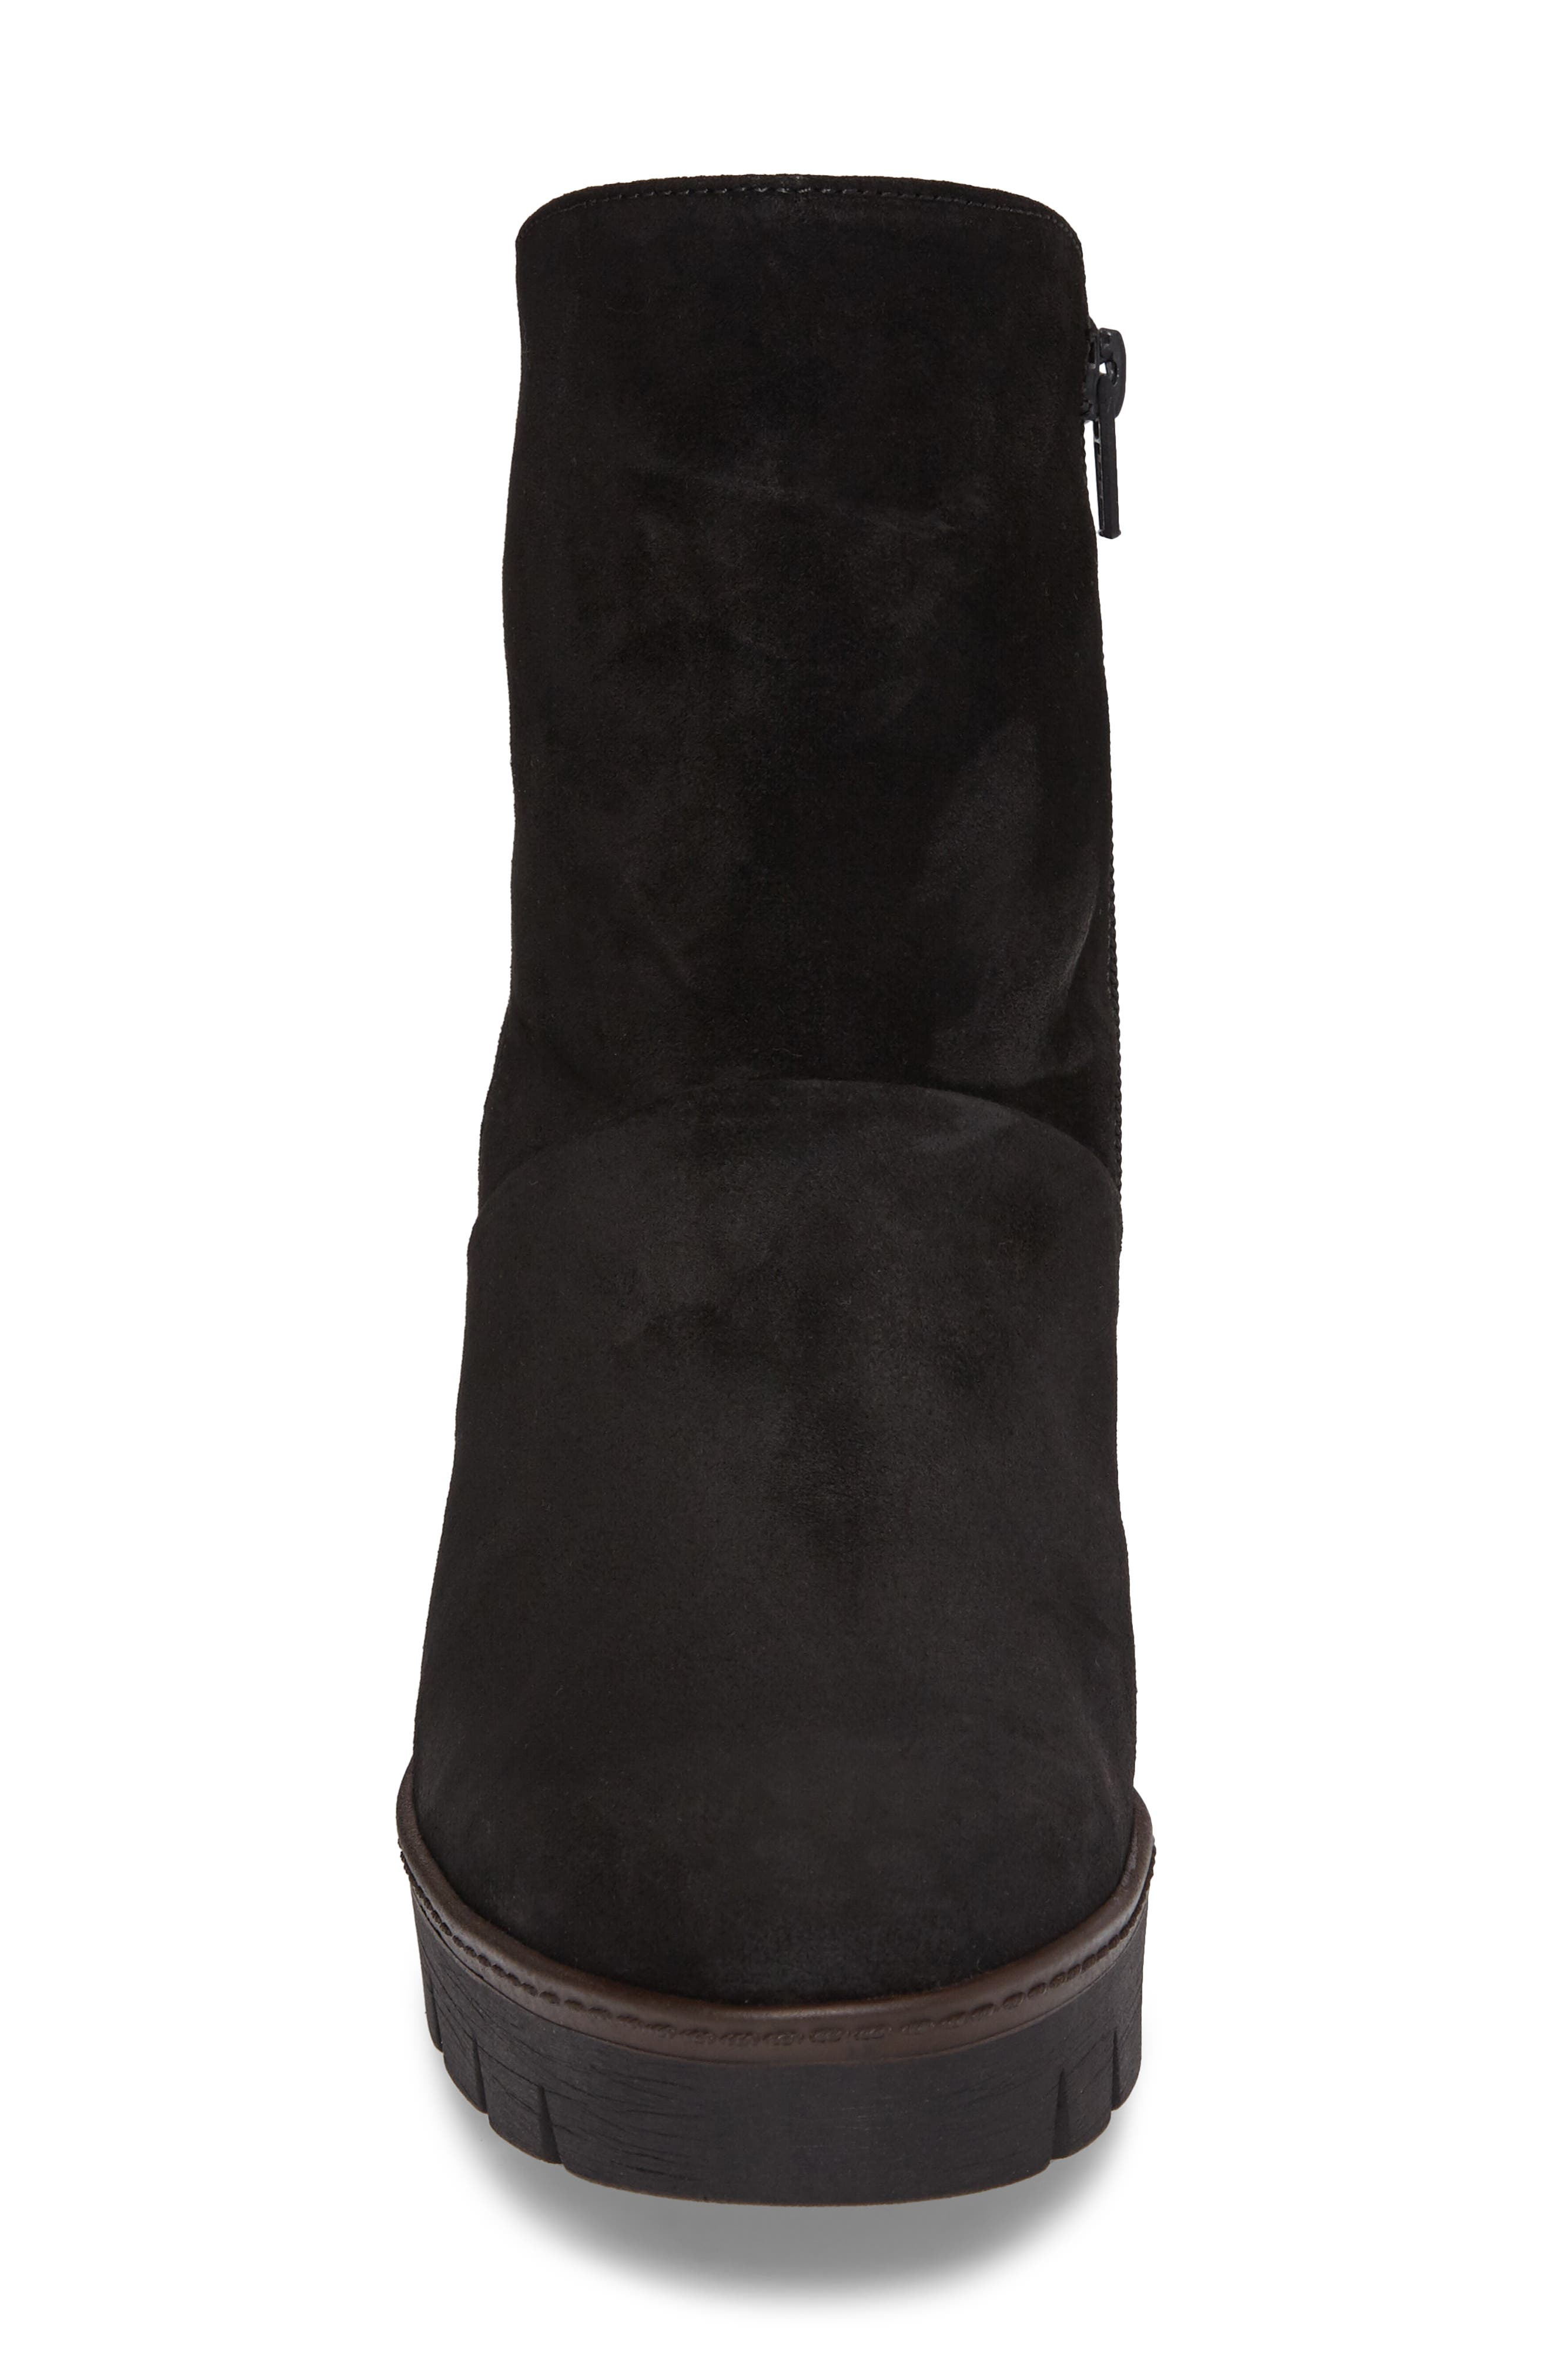 Wedge Bootie,                             Alternate thumbnail 4, color,                             BLACK SUEDE